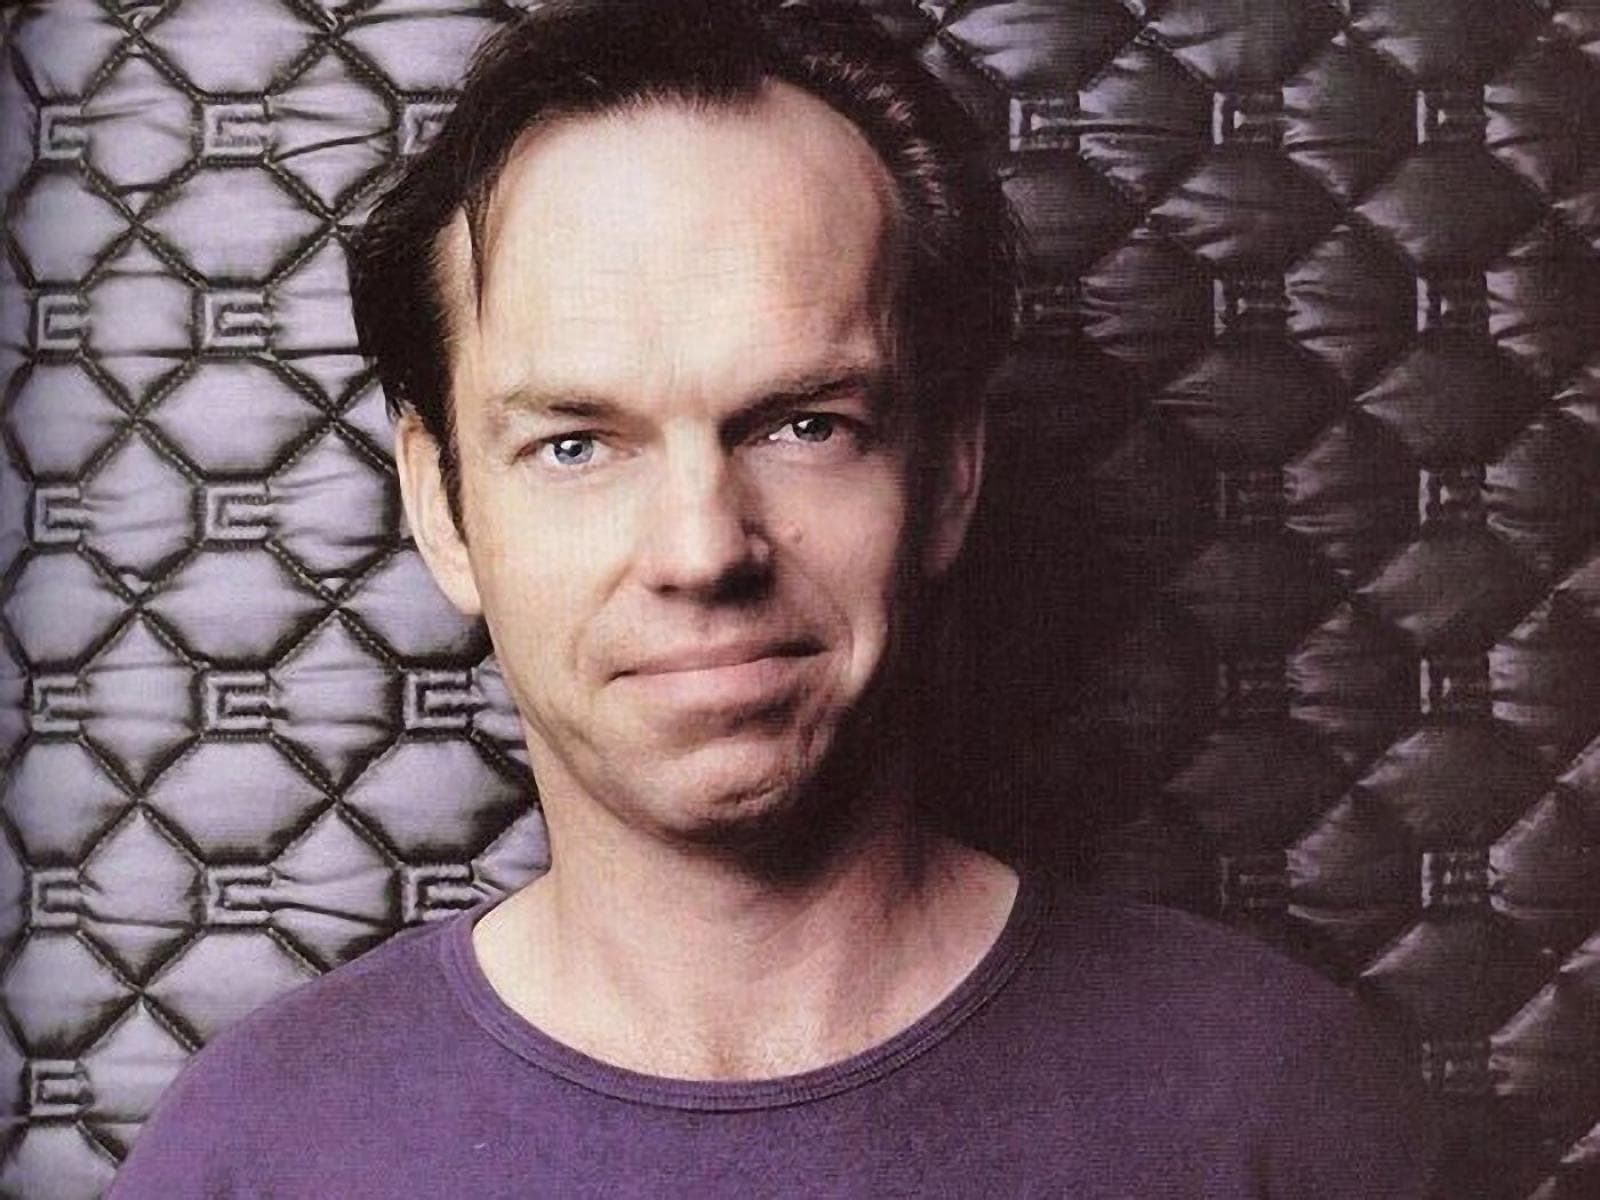 Hugo Weaving Phone number, Email Id, Fanmail, Instagram, Tiktok, and Contact Details